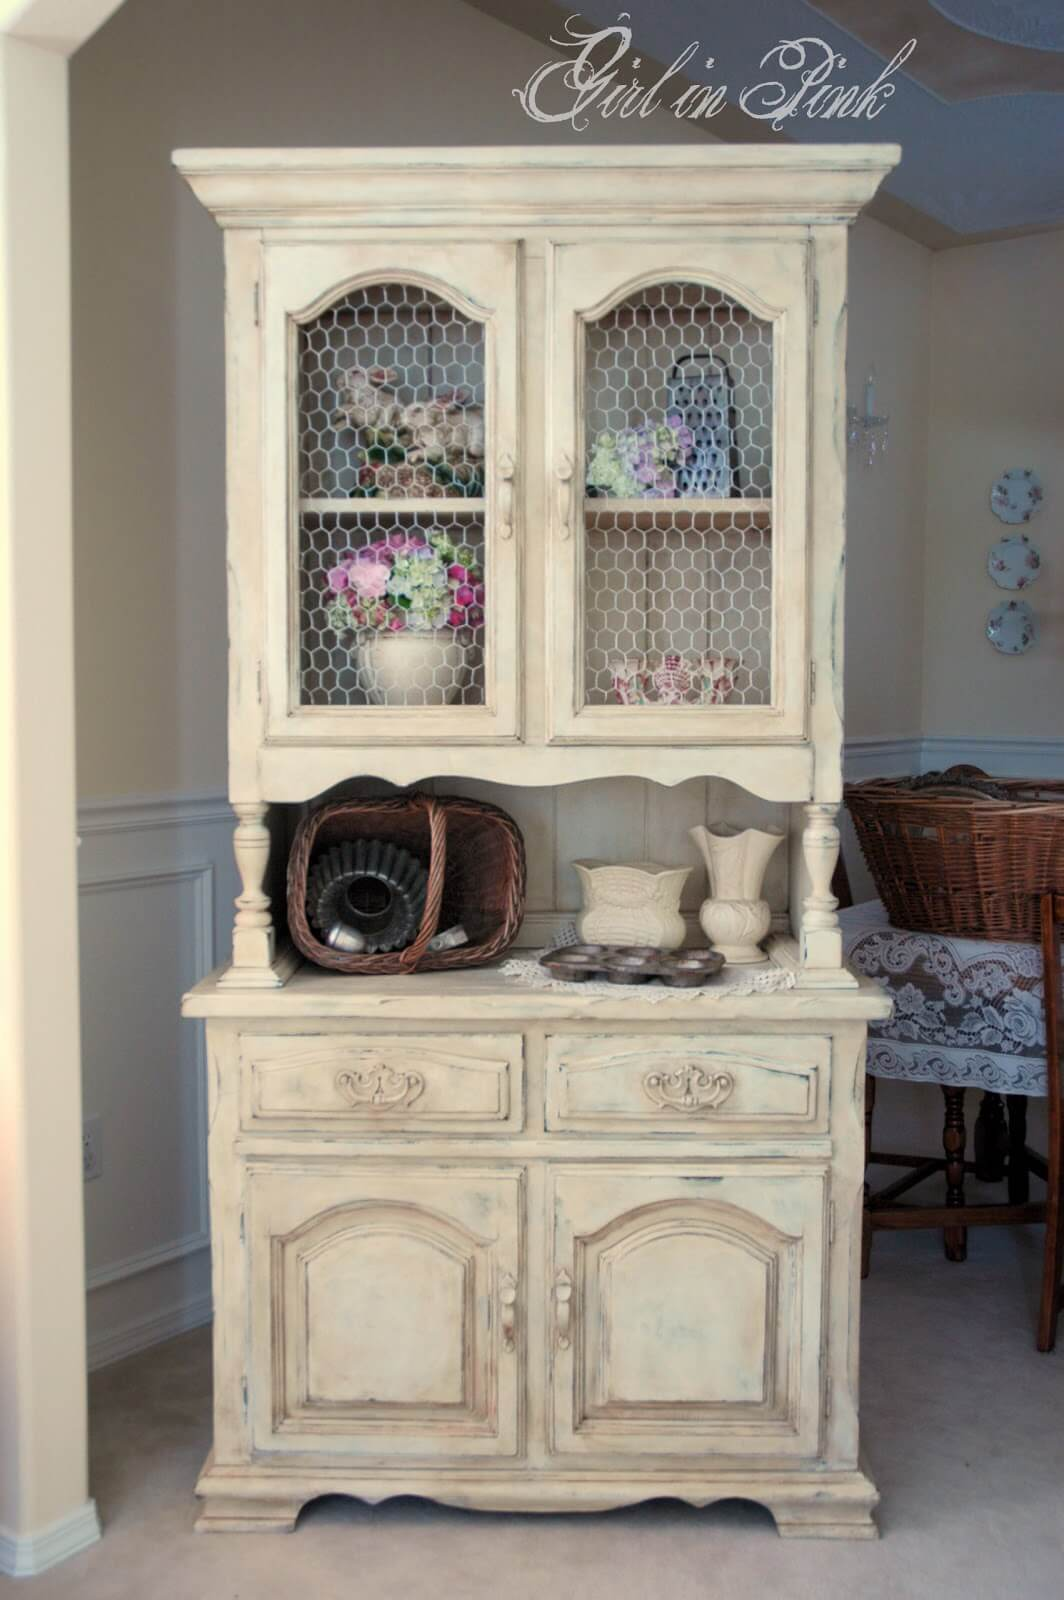 An Old Fashioned Cupboard For Plates And Decor